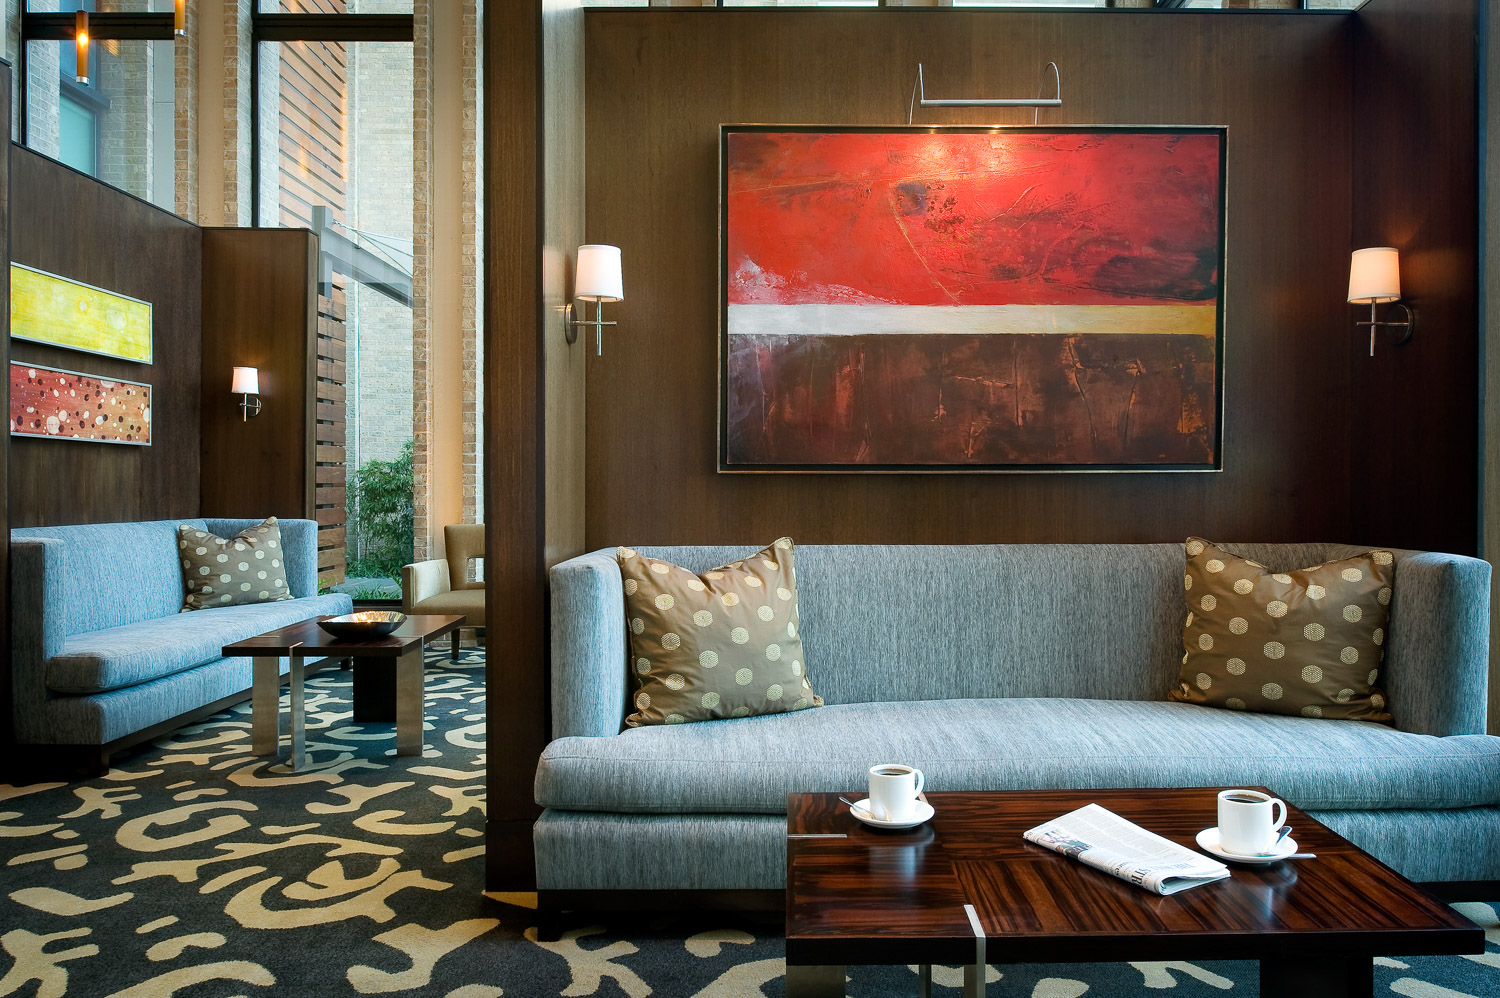 Lounge at Kimpton Hotel in Dallas, boutique hotel, luxury brand hotel, IHG hotels, hotel photography